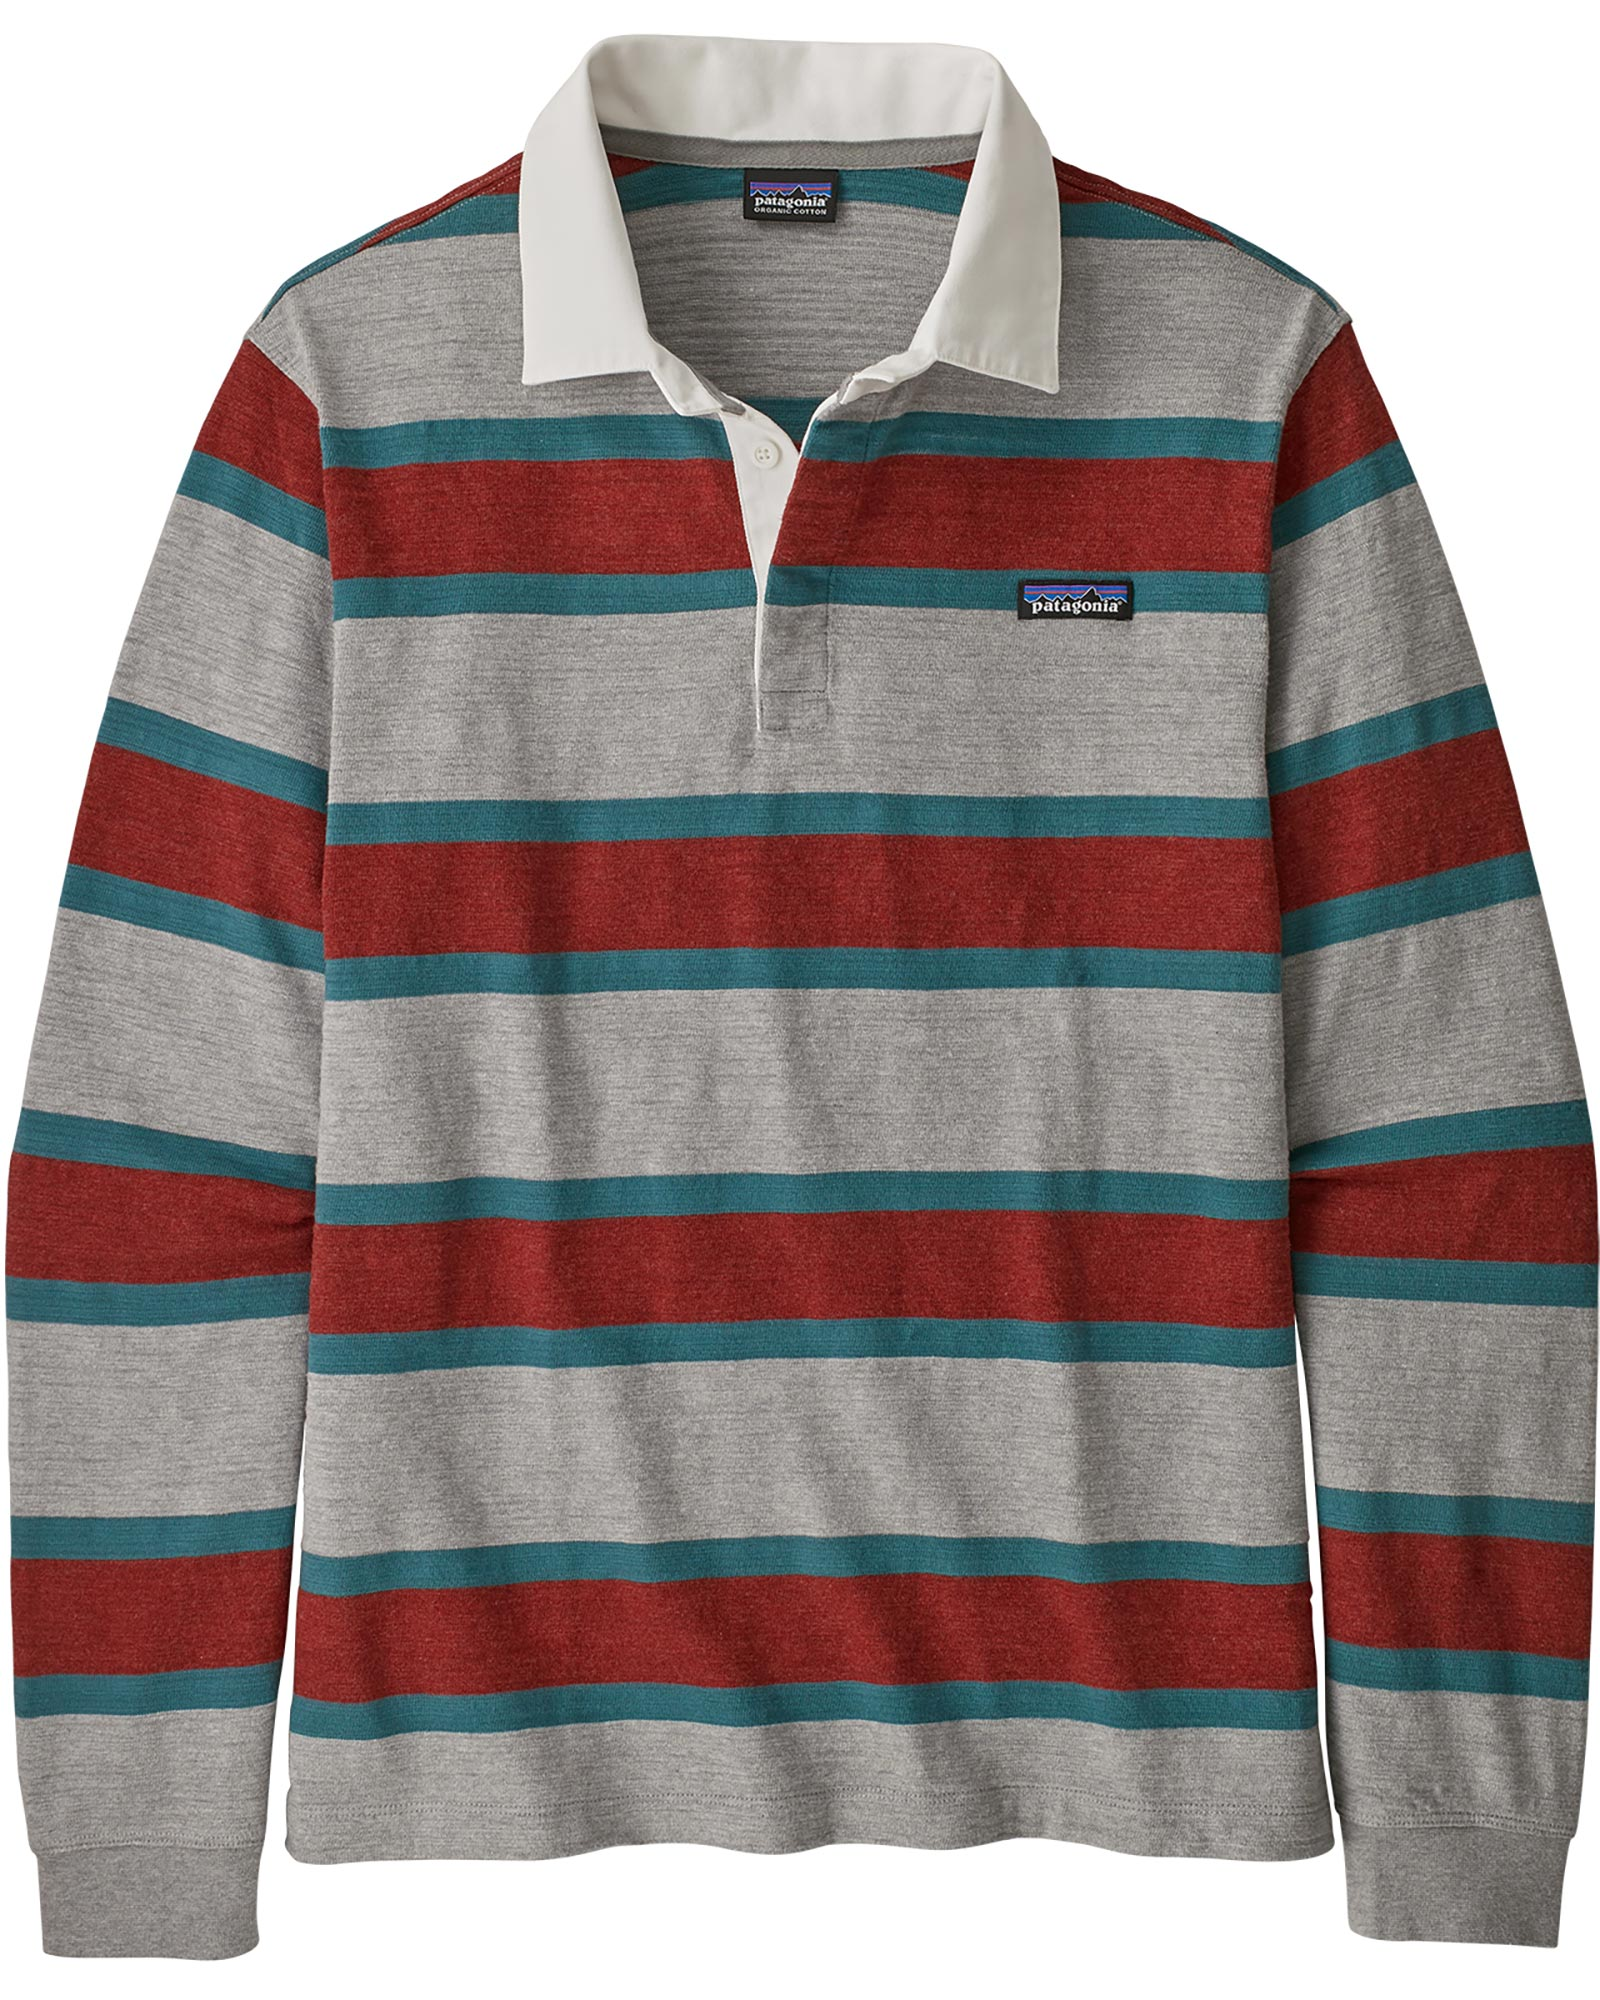 Patagonia Men's L/S Lwt Rugby Shirt 0